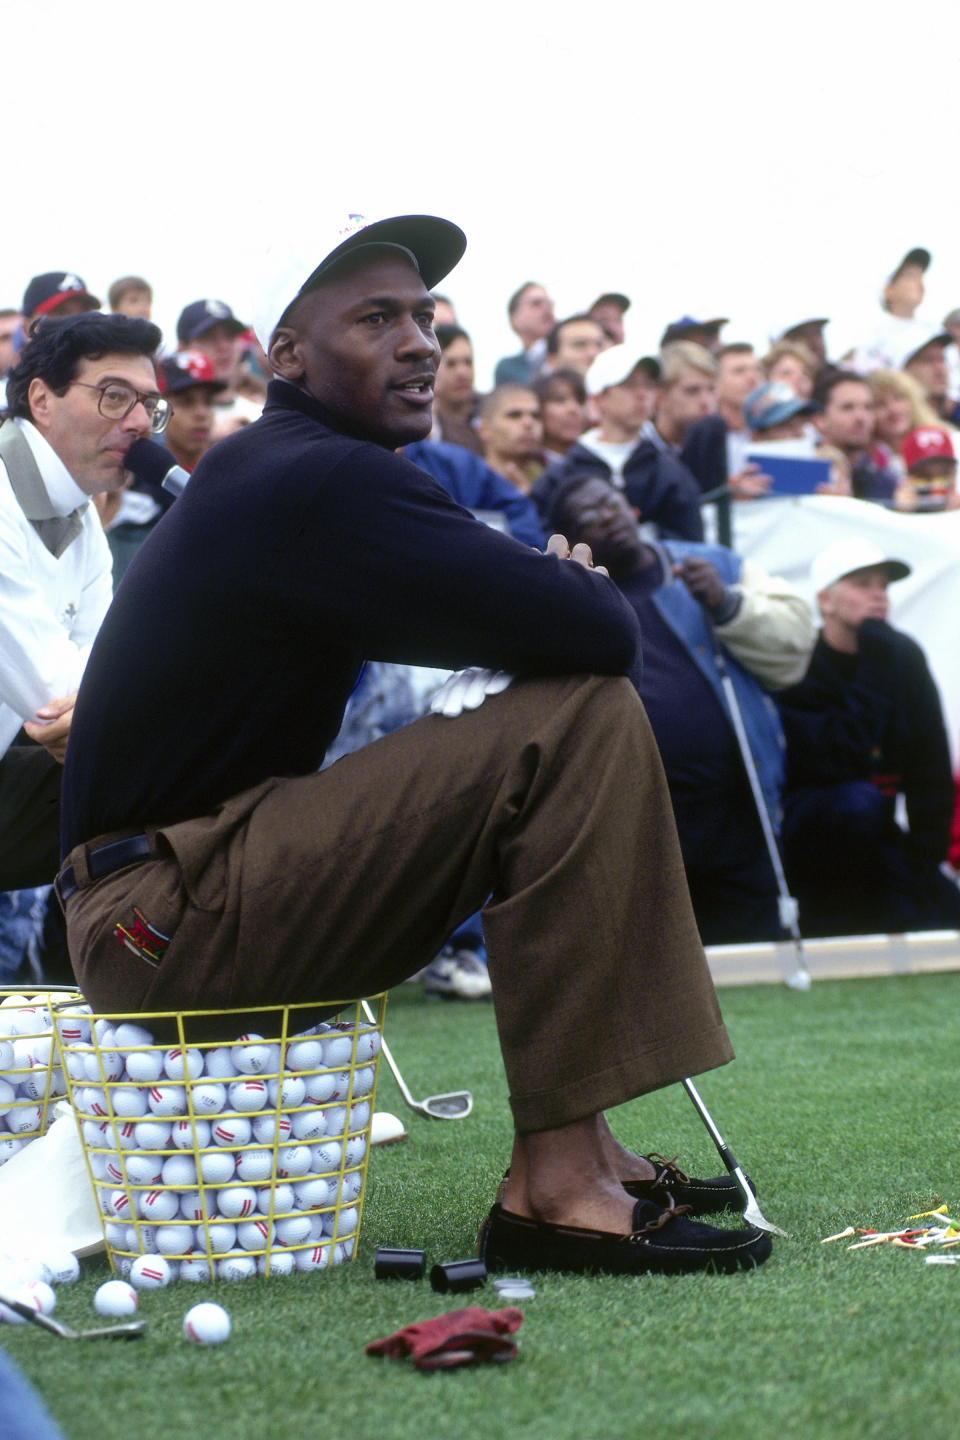 Michael Jordan looks on during the Michael Jordan Golf Open on October 31, 1995 in Aurora, Illinois. (Photo by Barry Jarvinen/NBAE via Getty Images)